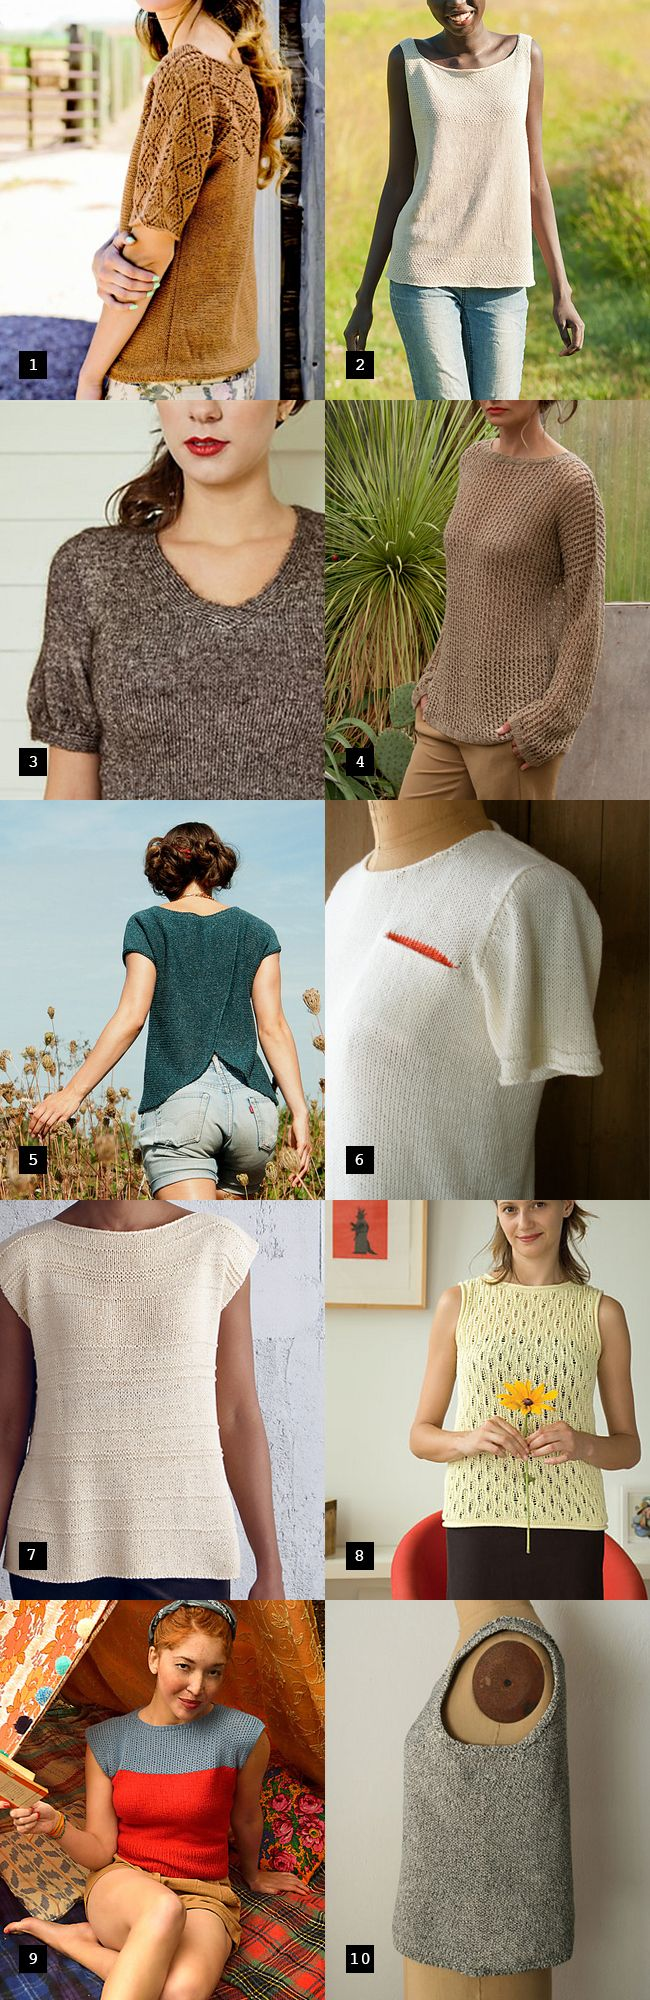 225 best Spring & Summer knitting images on Pinterest | Knitting ...